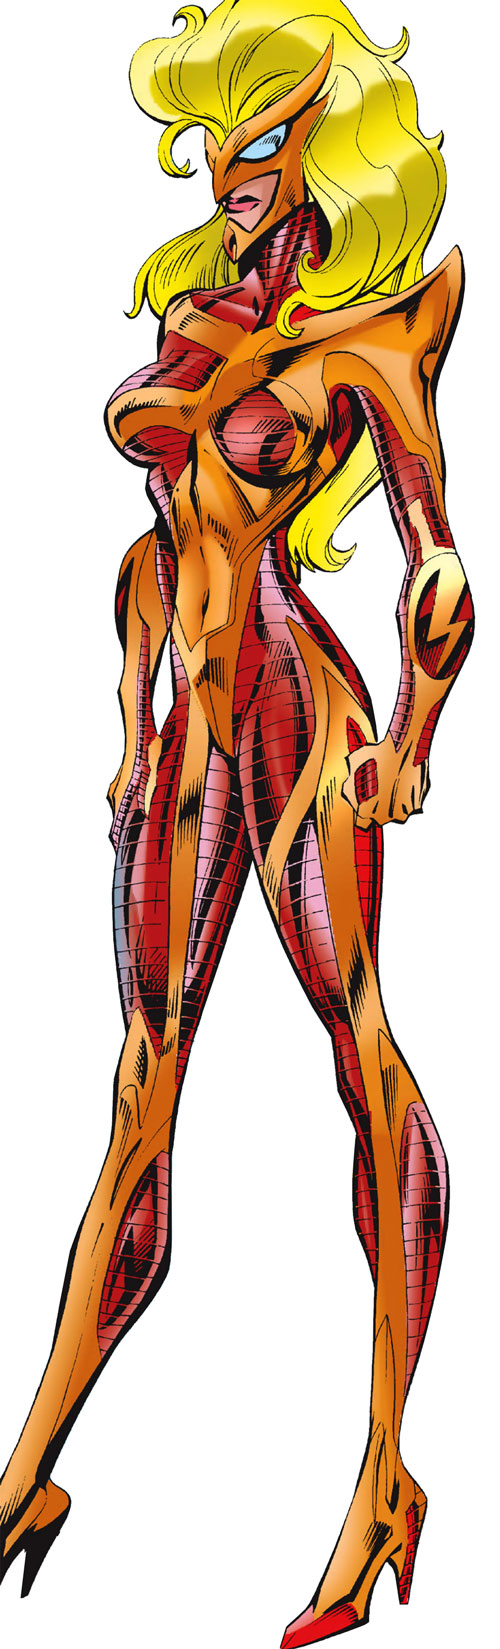 Moonstone / Meteorite of the Thunderbolts (Marvel Comics) orange and light red armor